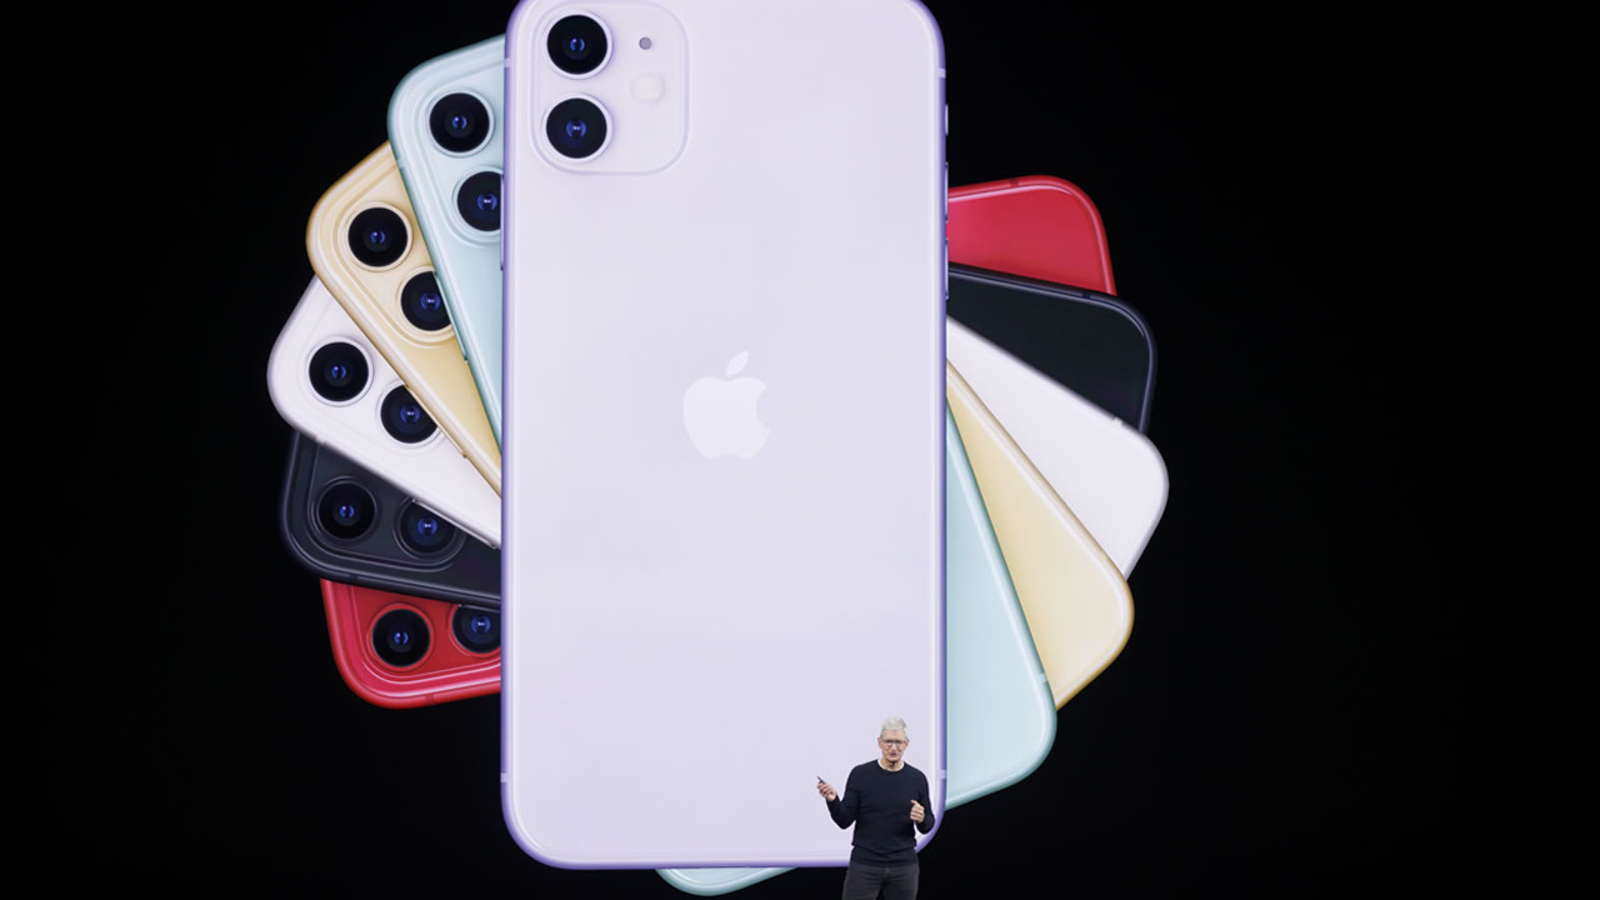 Apple Event 2019: Video service announced, new iPhone 11 unveiled